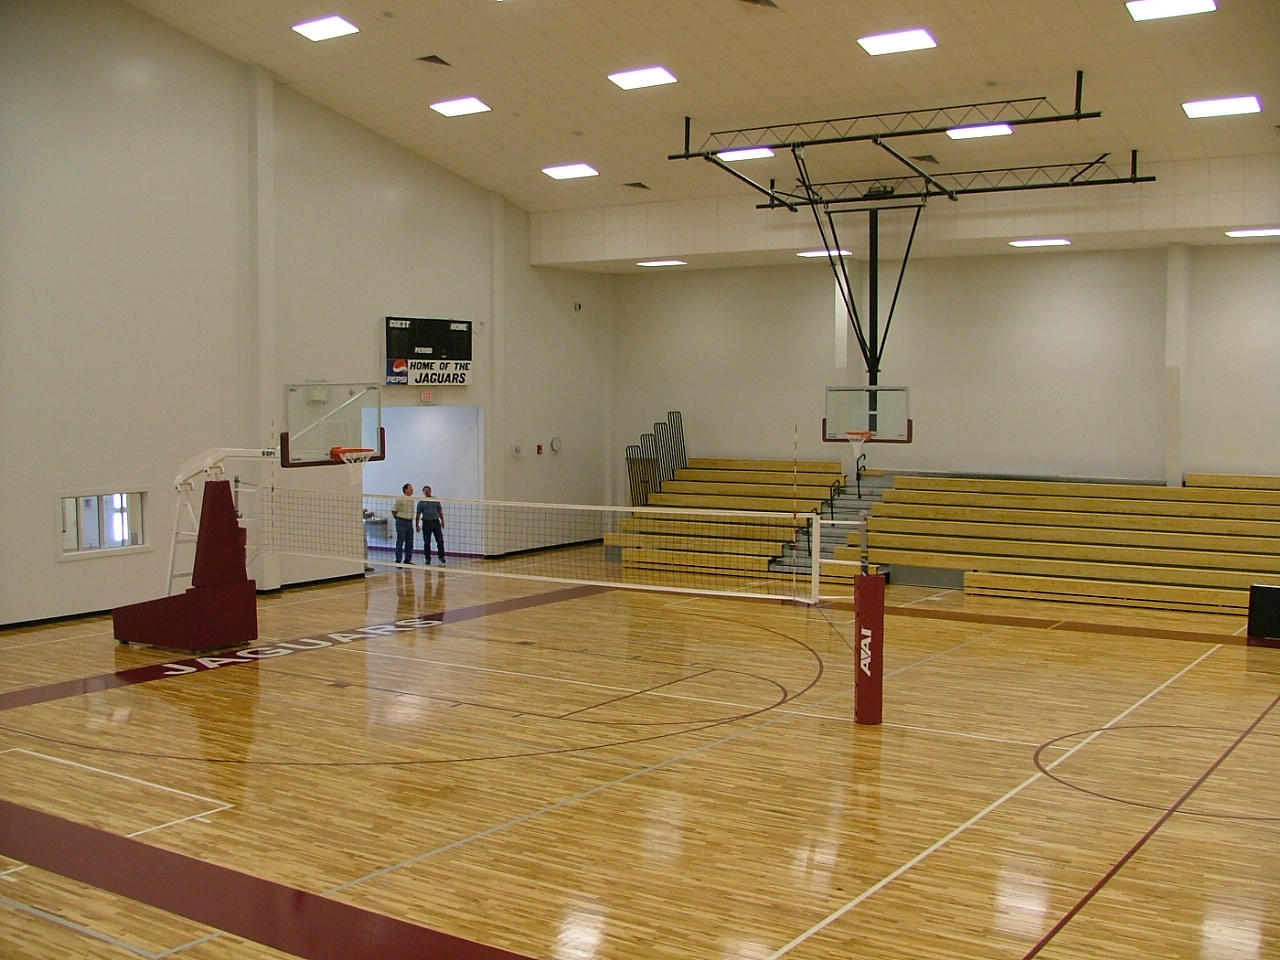 J.Z. GEORGE HIGH SCHOOL GYMNASIUM